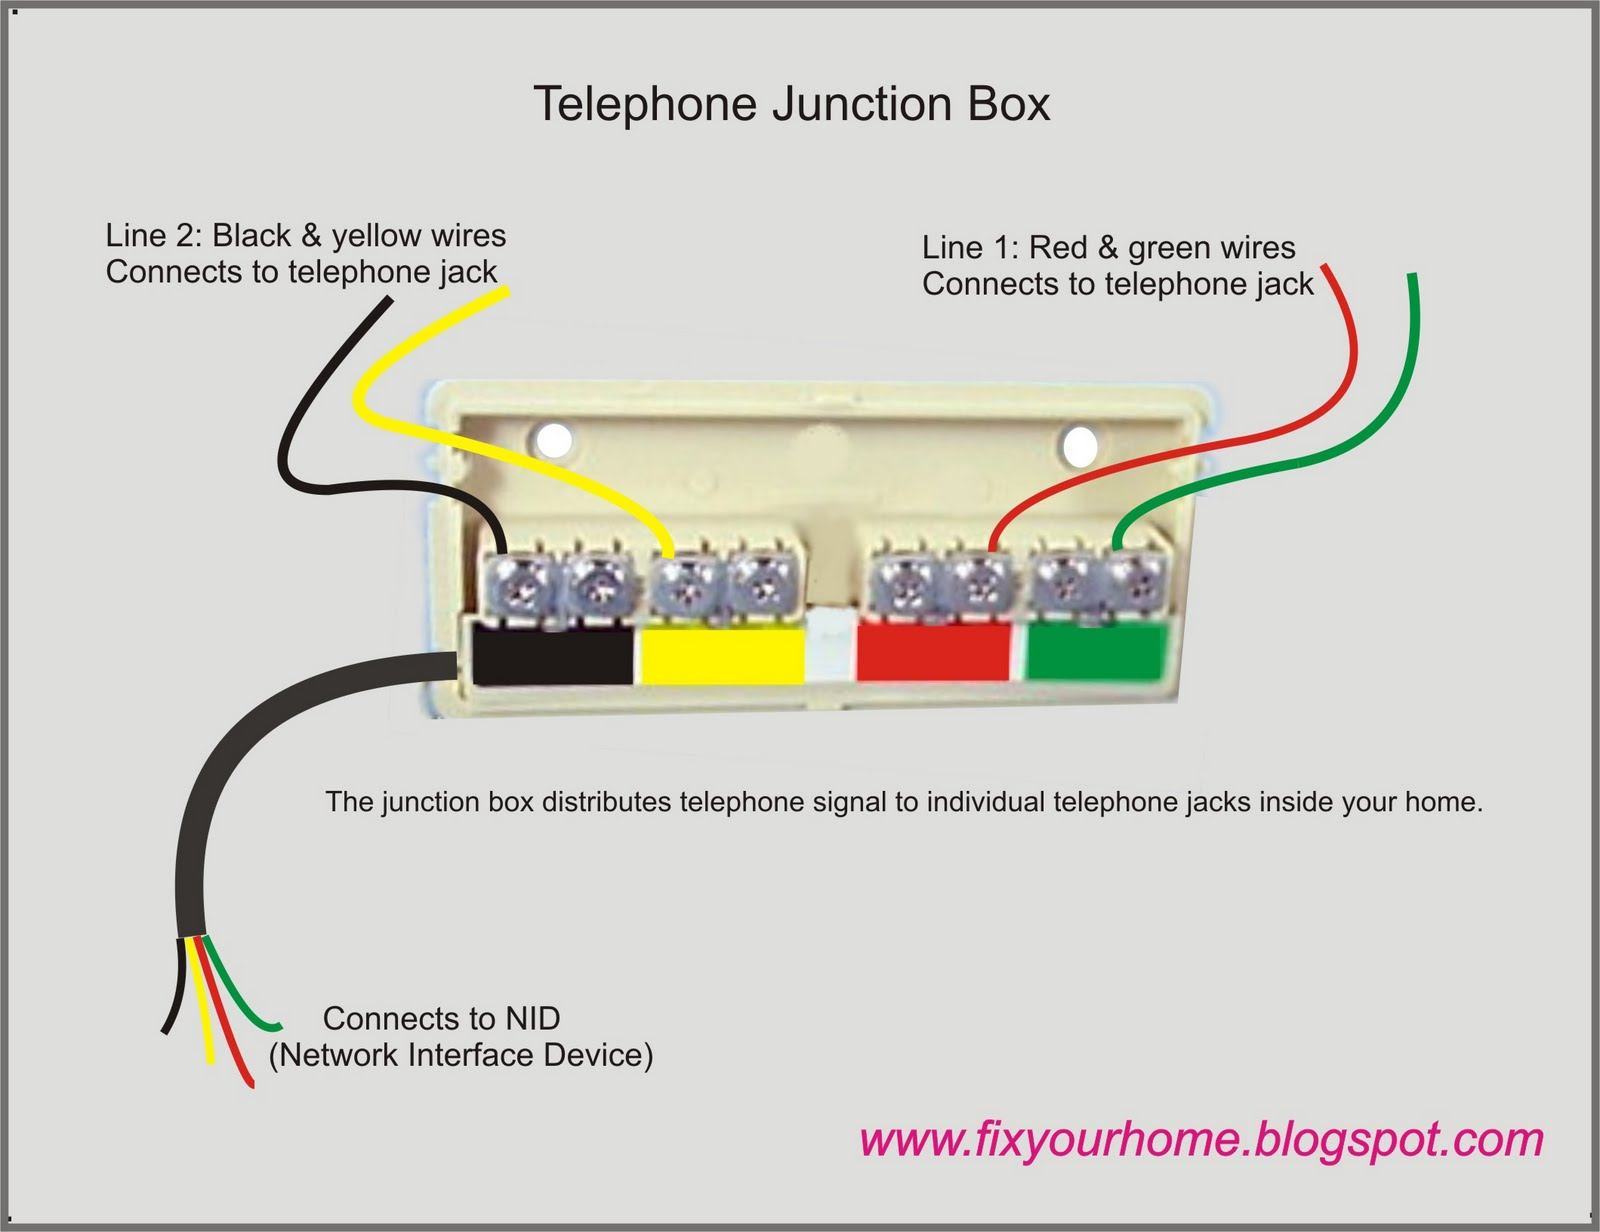 phone box diagram 7 wires wiring diagram portal phone socket wiring diagram uk phone box wire [ 1600 x 1232 Pixel ]